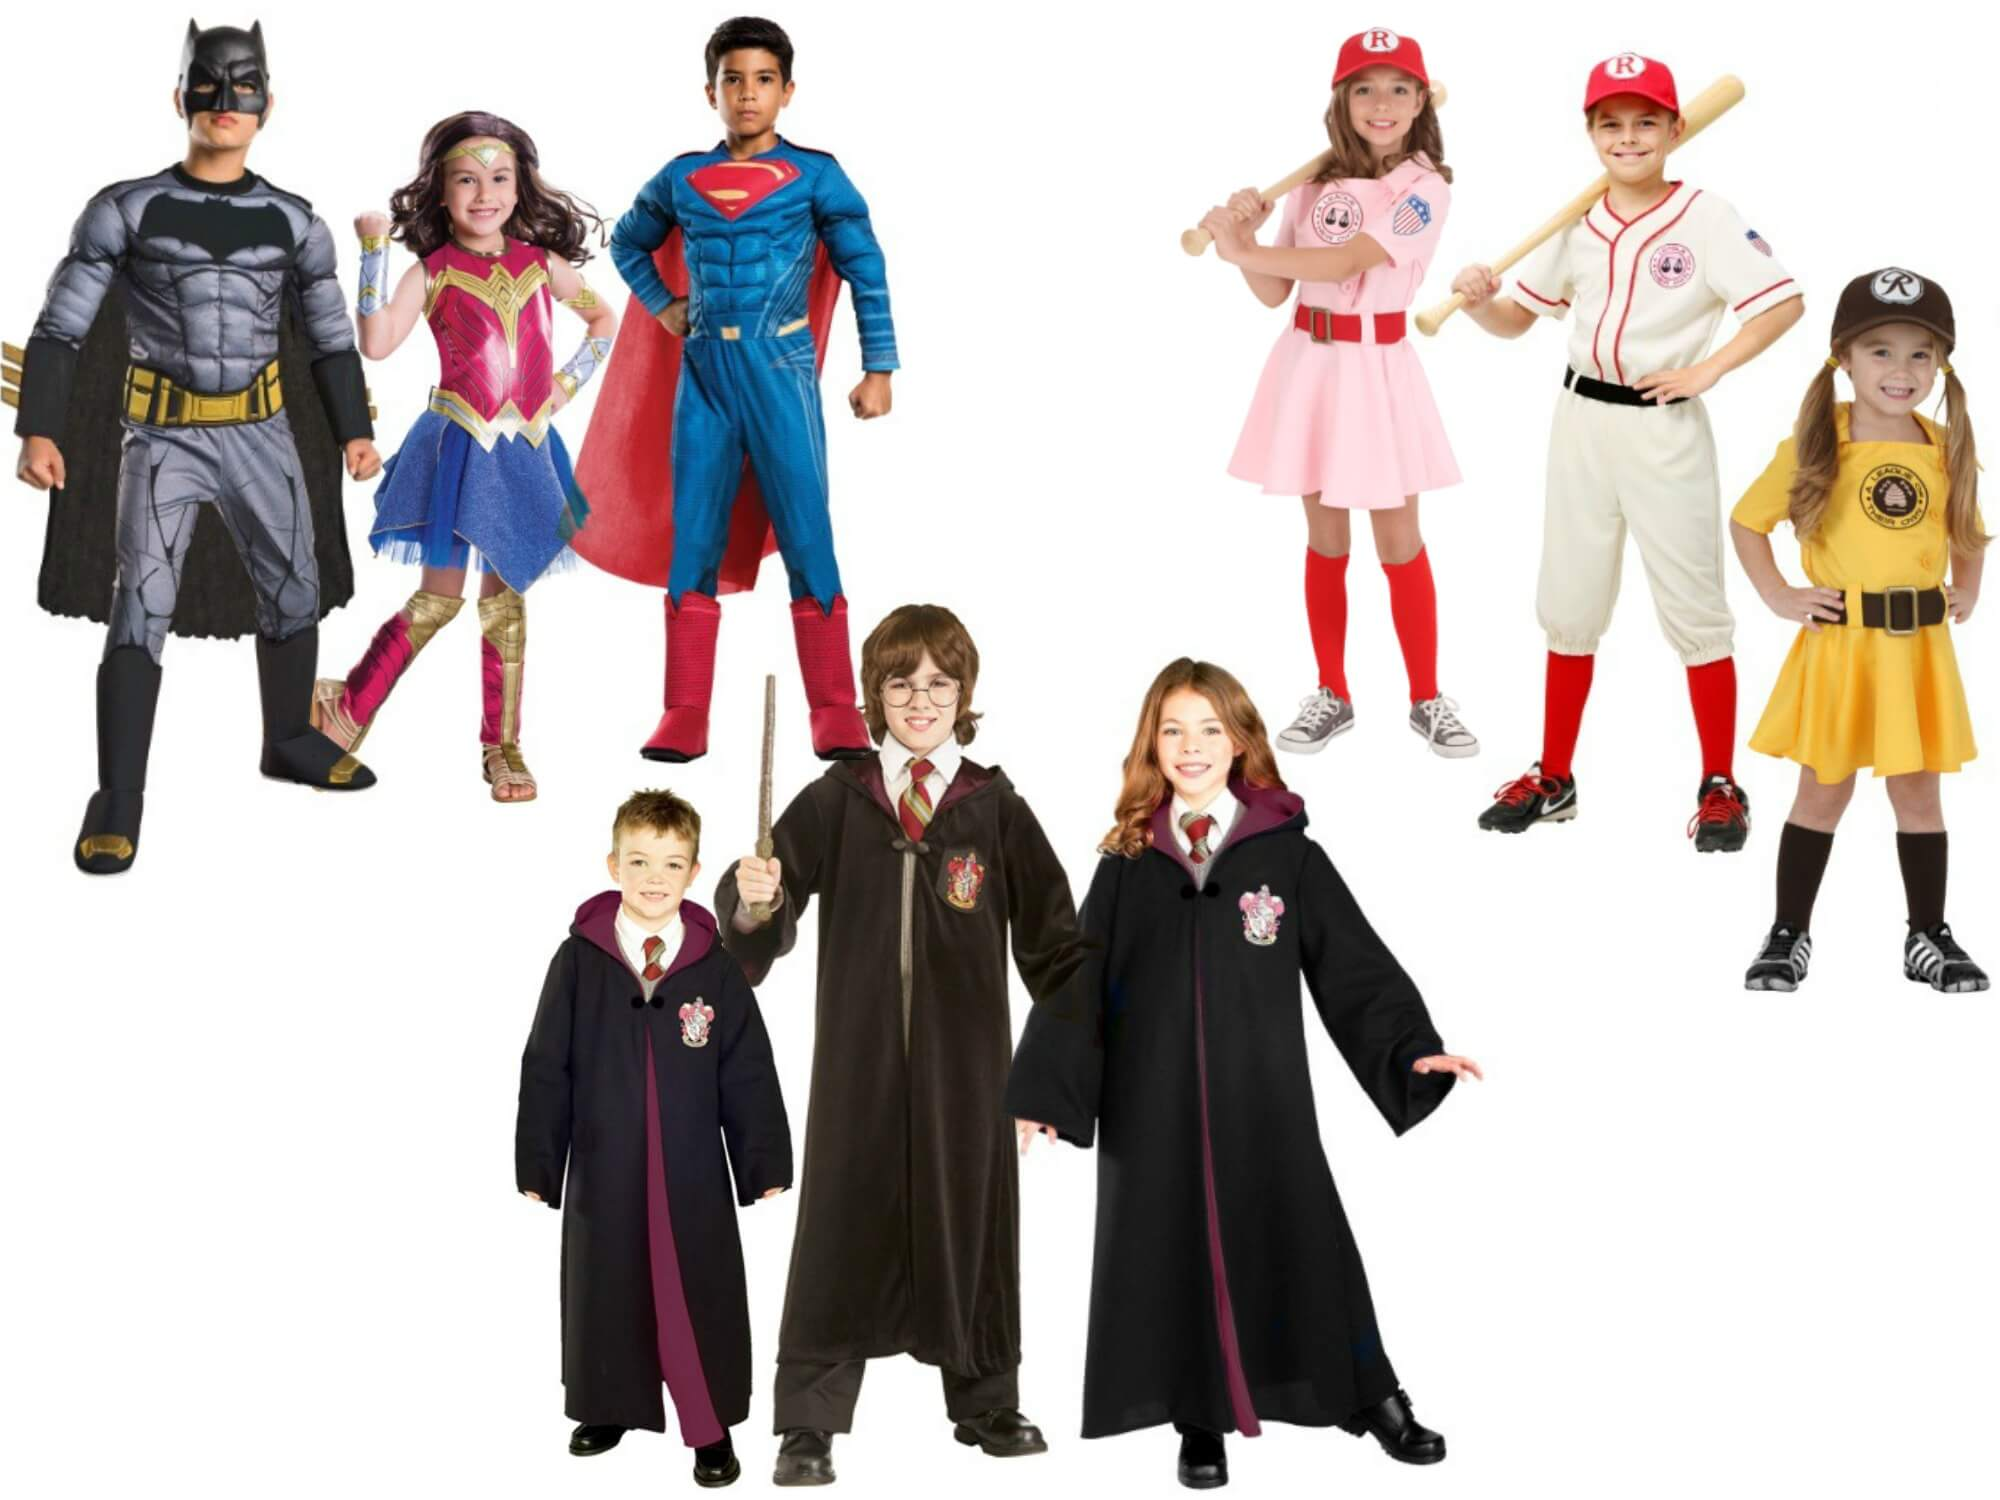 Costumes for three siblings  sc 1 st  Halloween Costumes & Halloween Costumes for Siblings - Halloween Costumes Blog